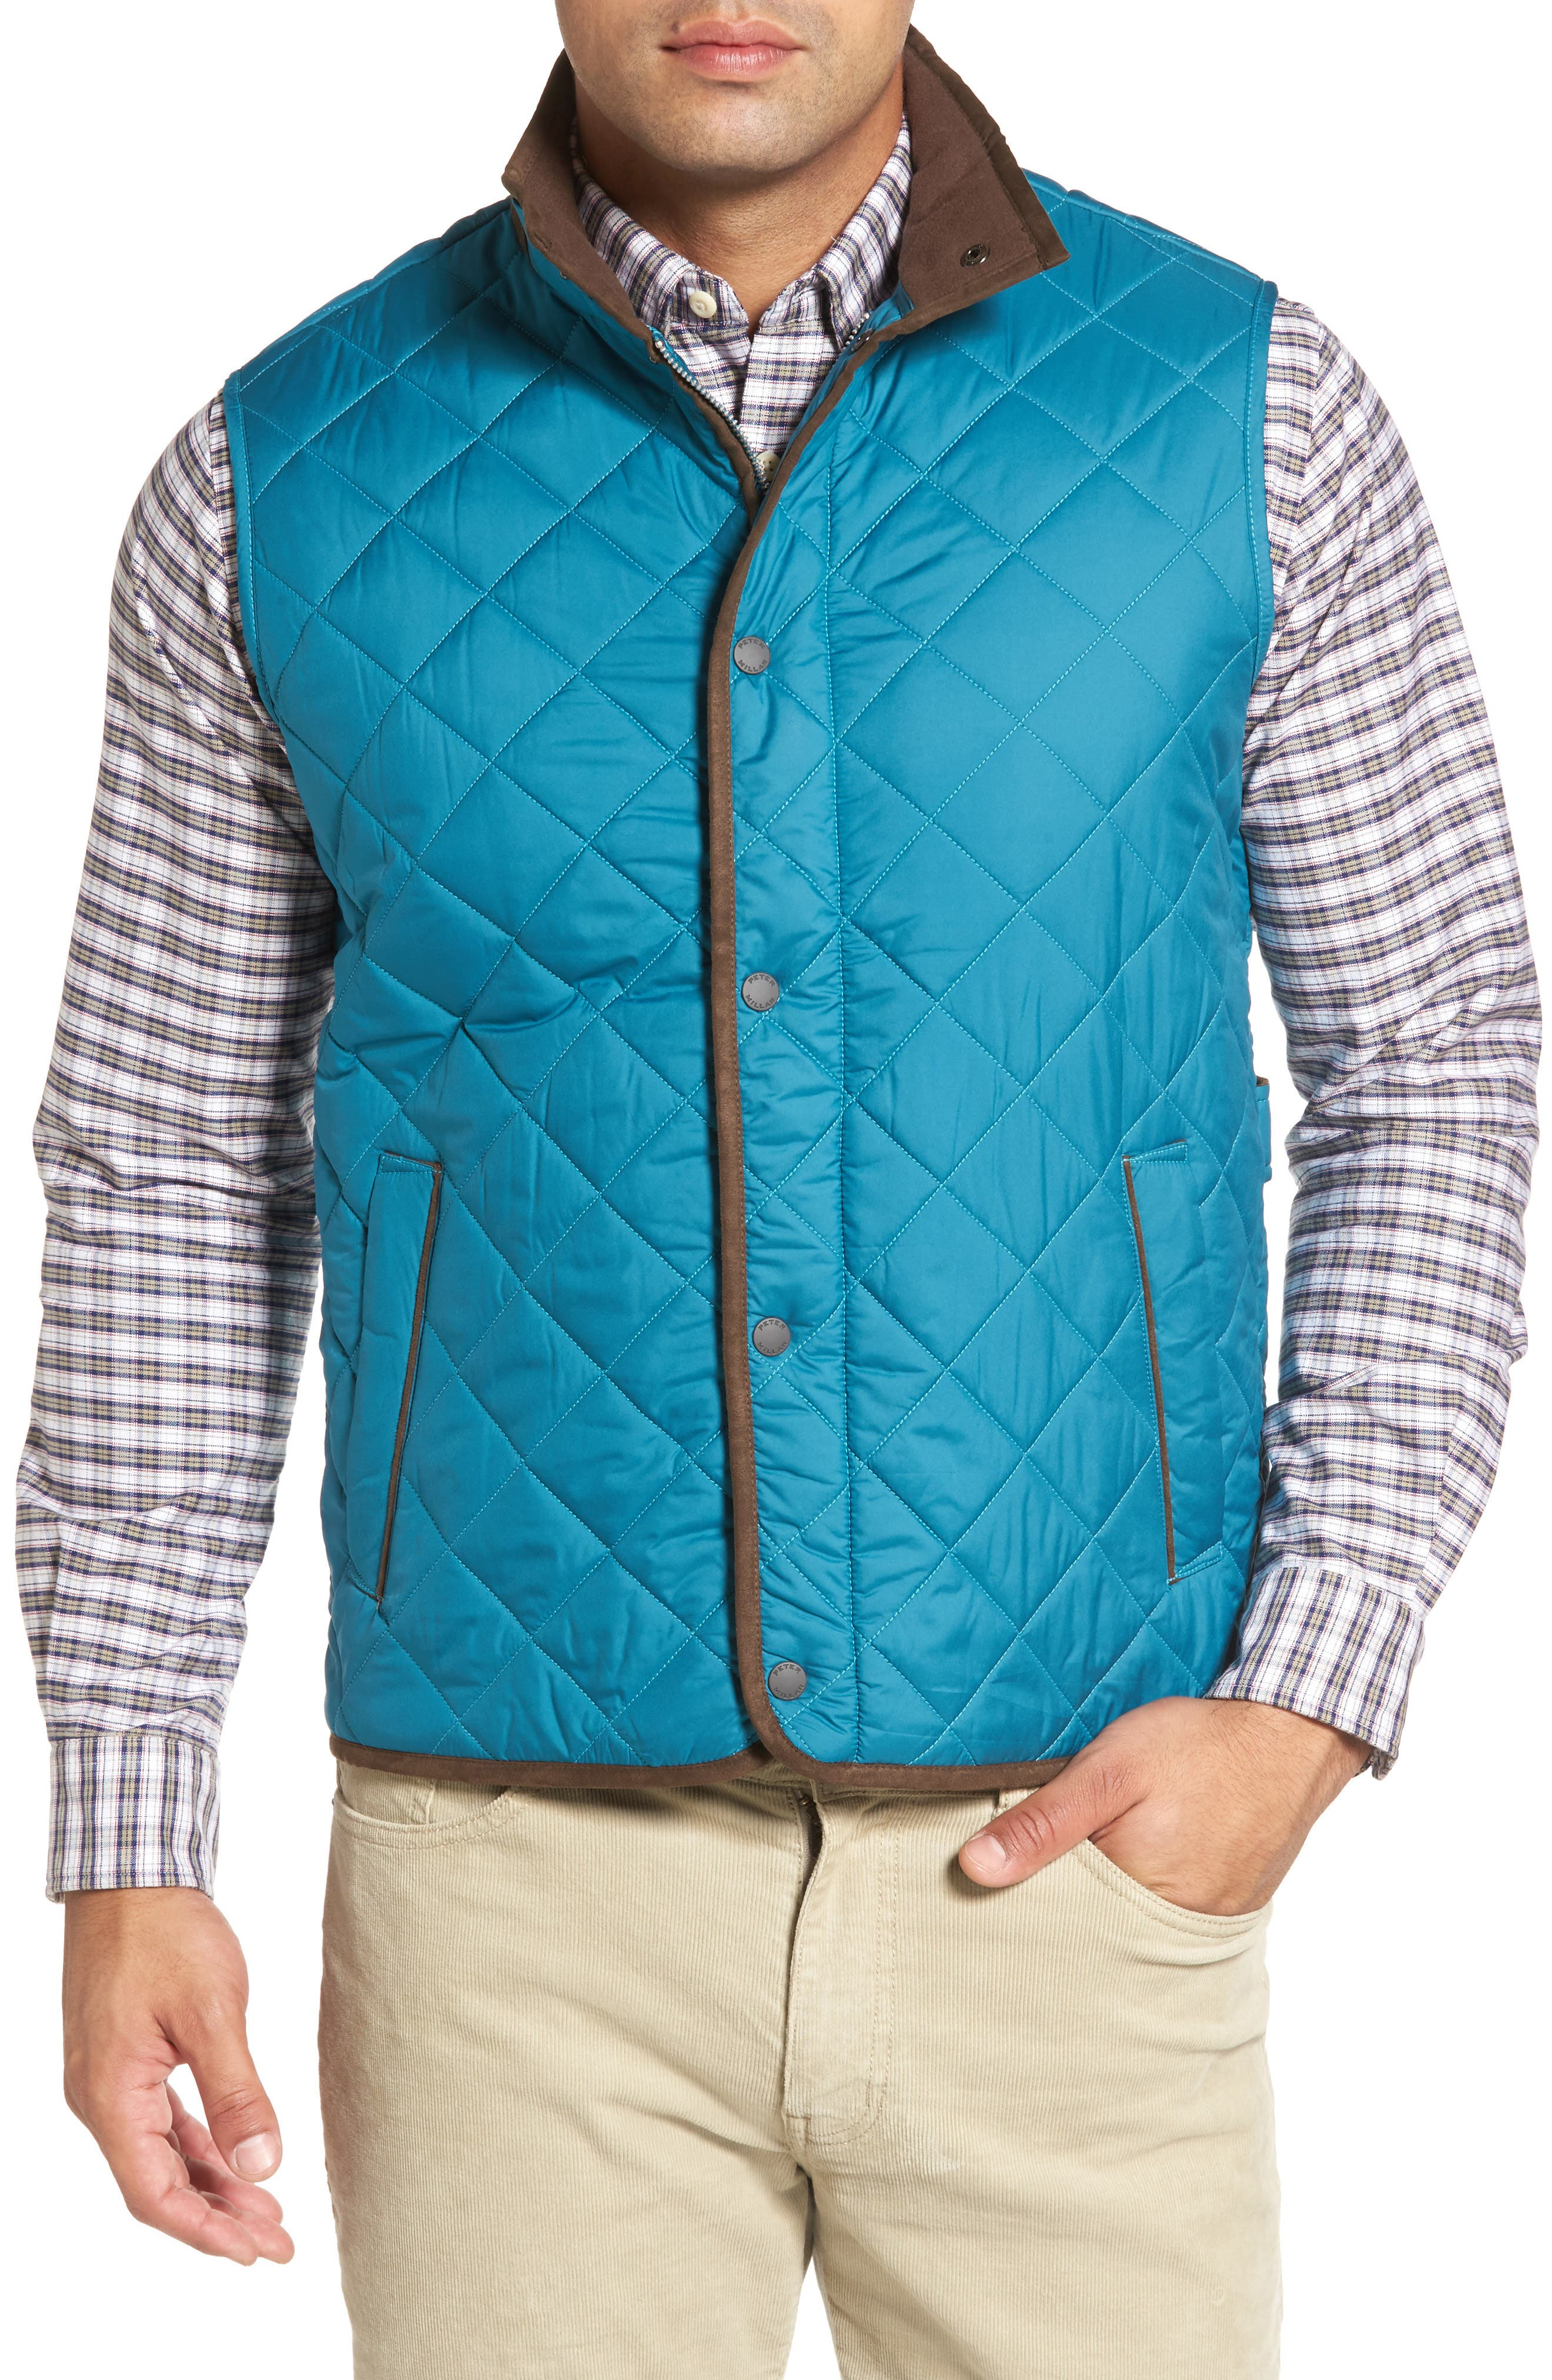 Alternate Image 1 Selected - Peter Millar Essex Quilted Vest